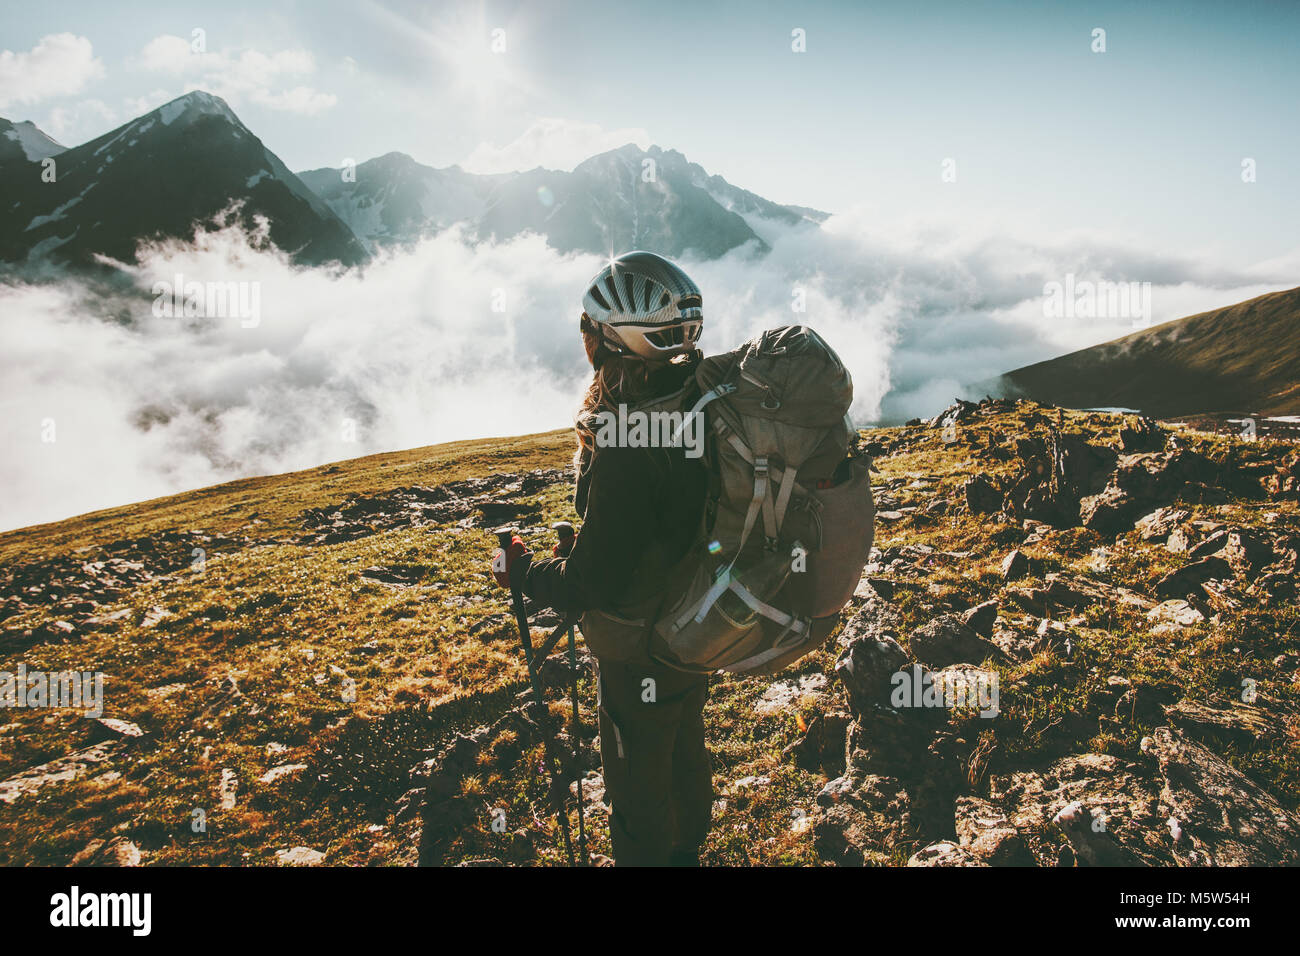 Woman traveler avec sac à dos trekking dans les montagnes de vie voyage adventure concept active summer vacations Photo Stock